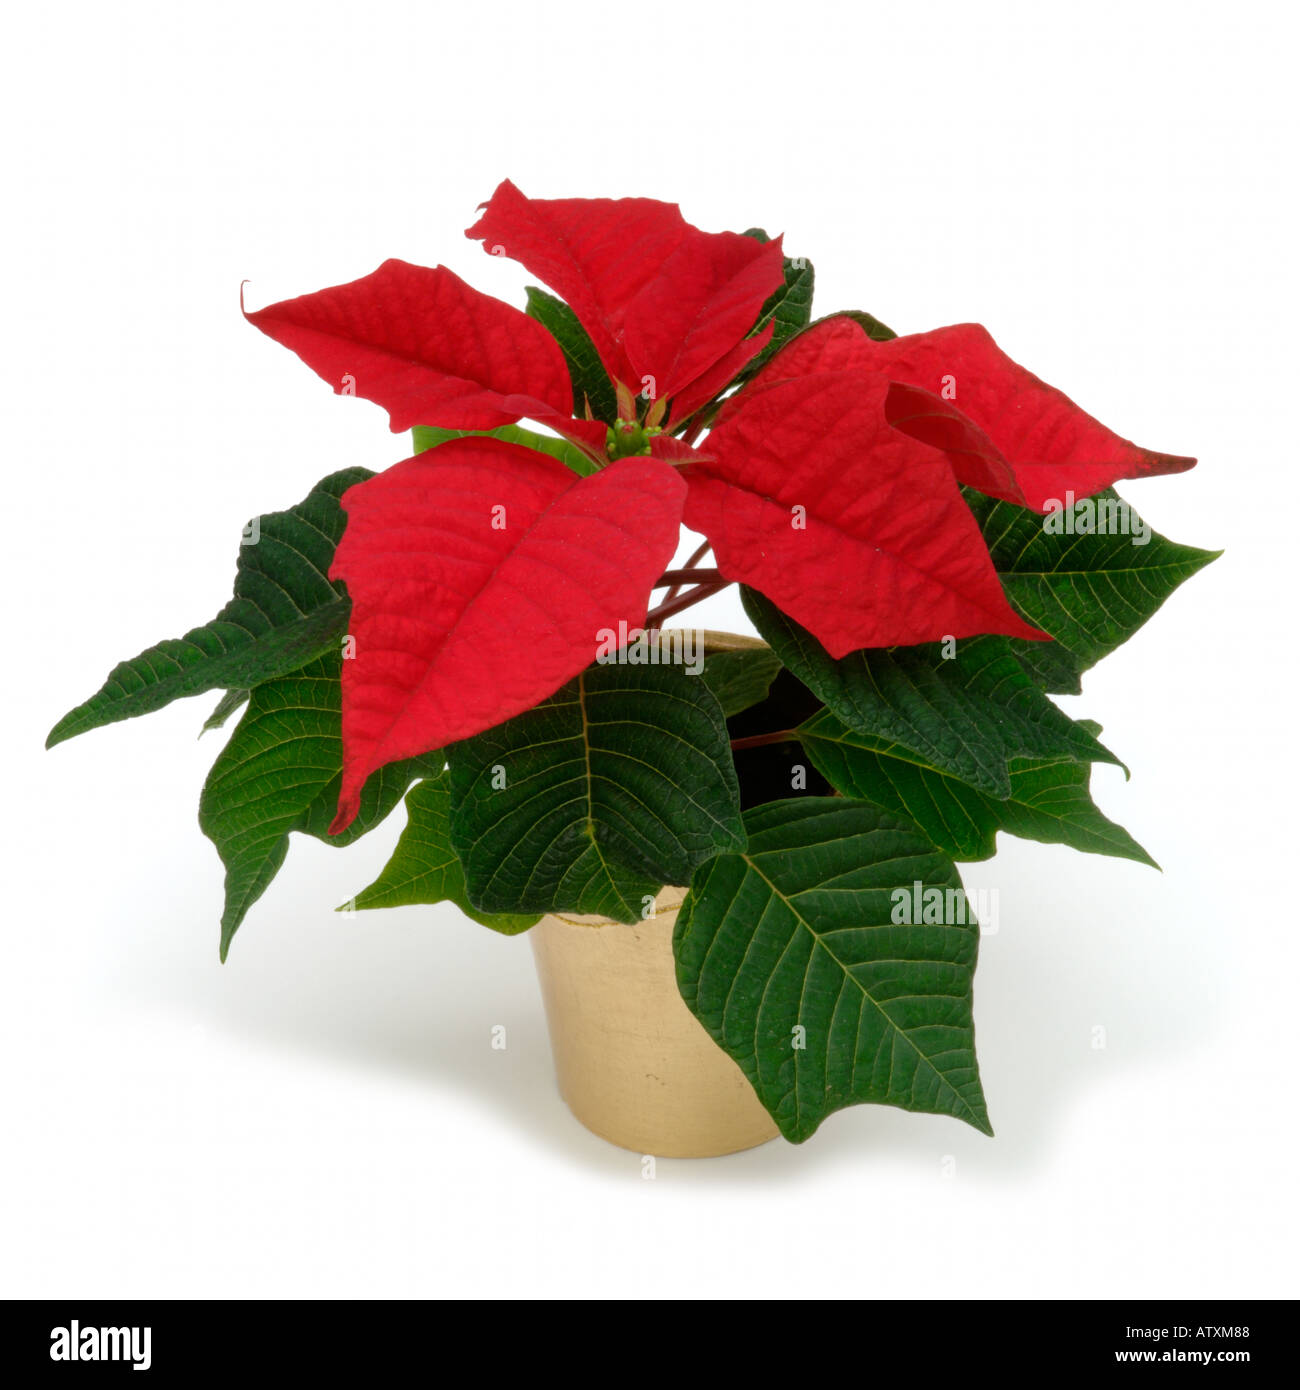 Poinsettia House Plant: Red Leaves Of Poinsettia In Gold Potted House Plant On